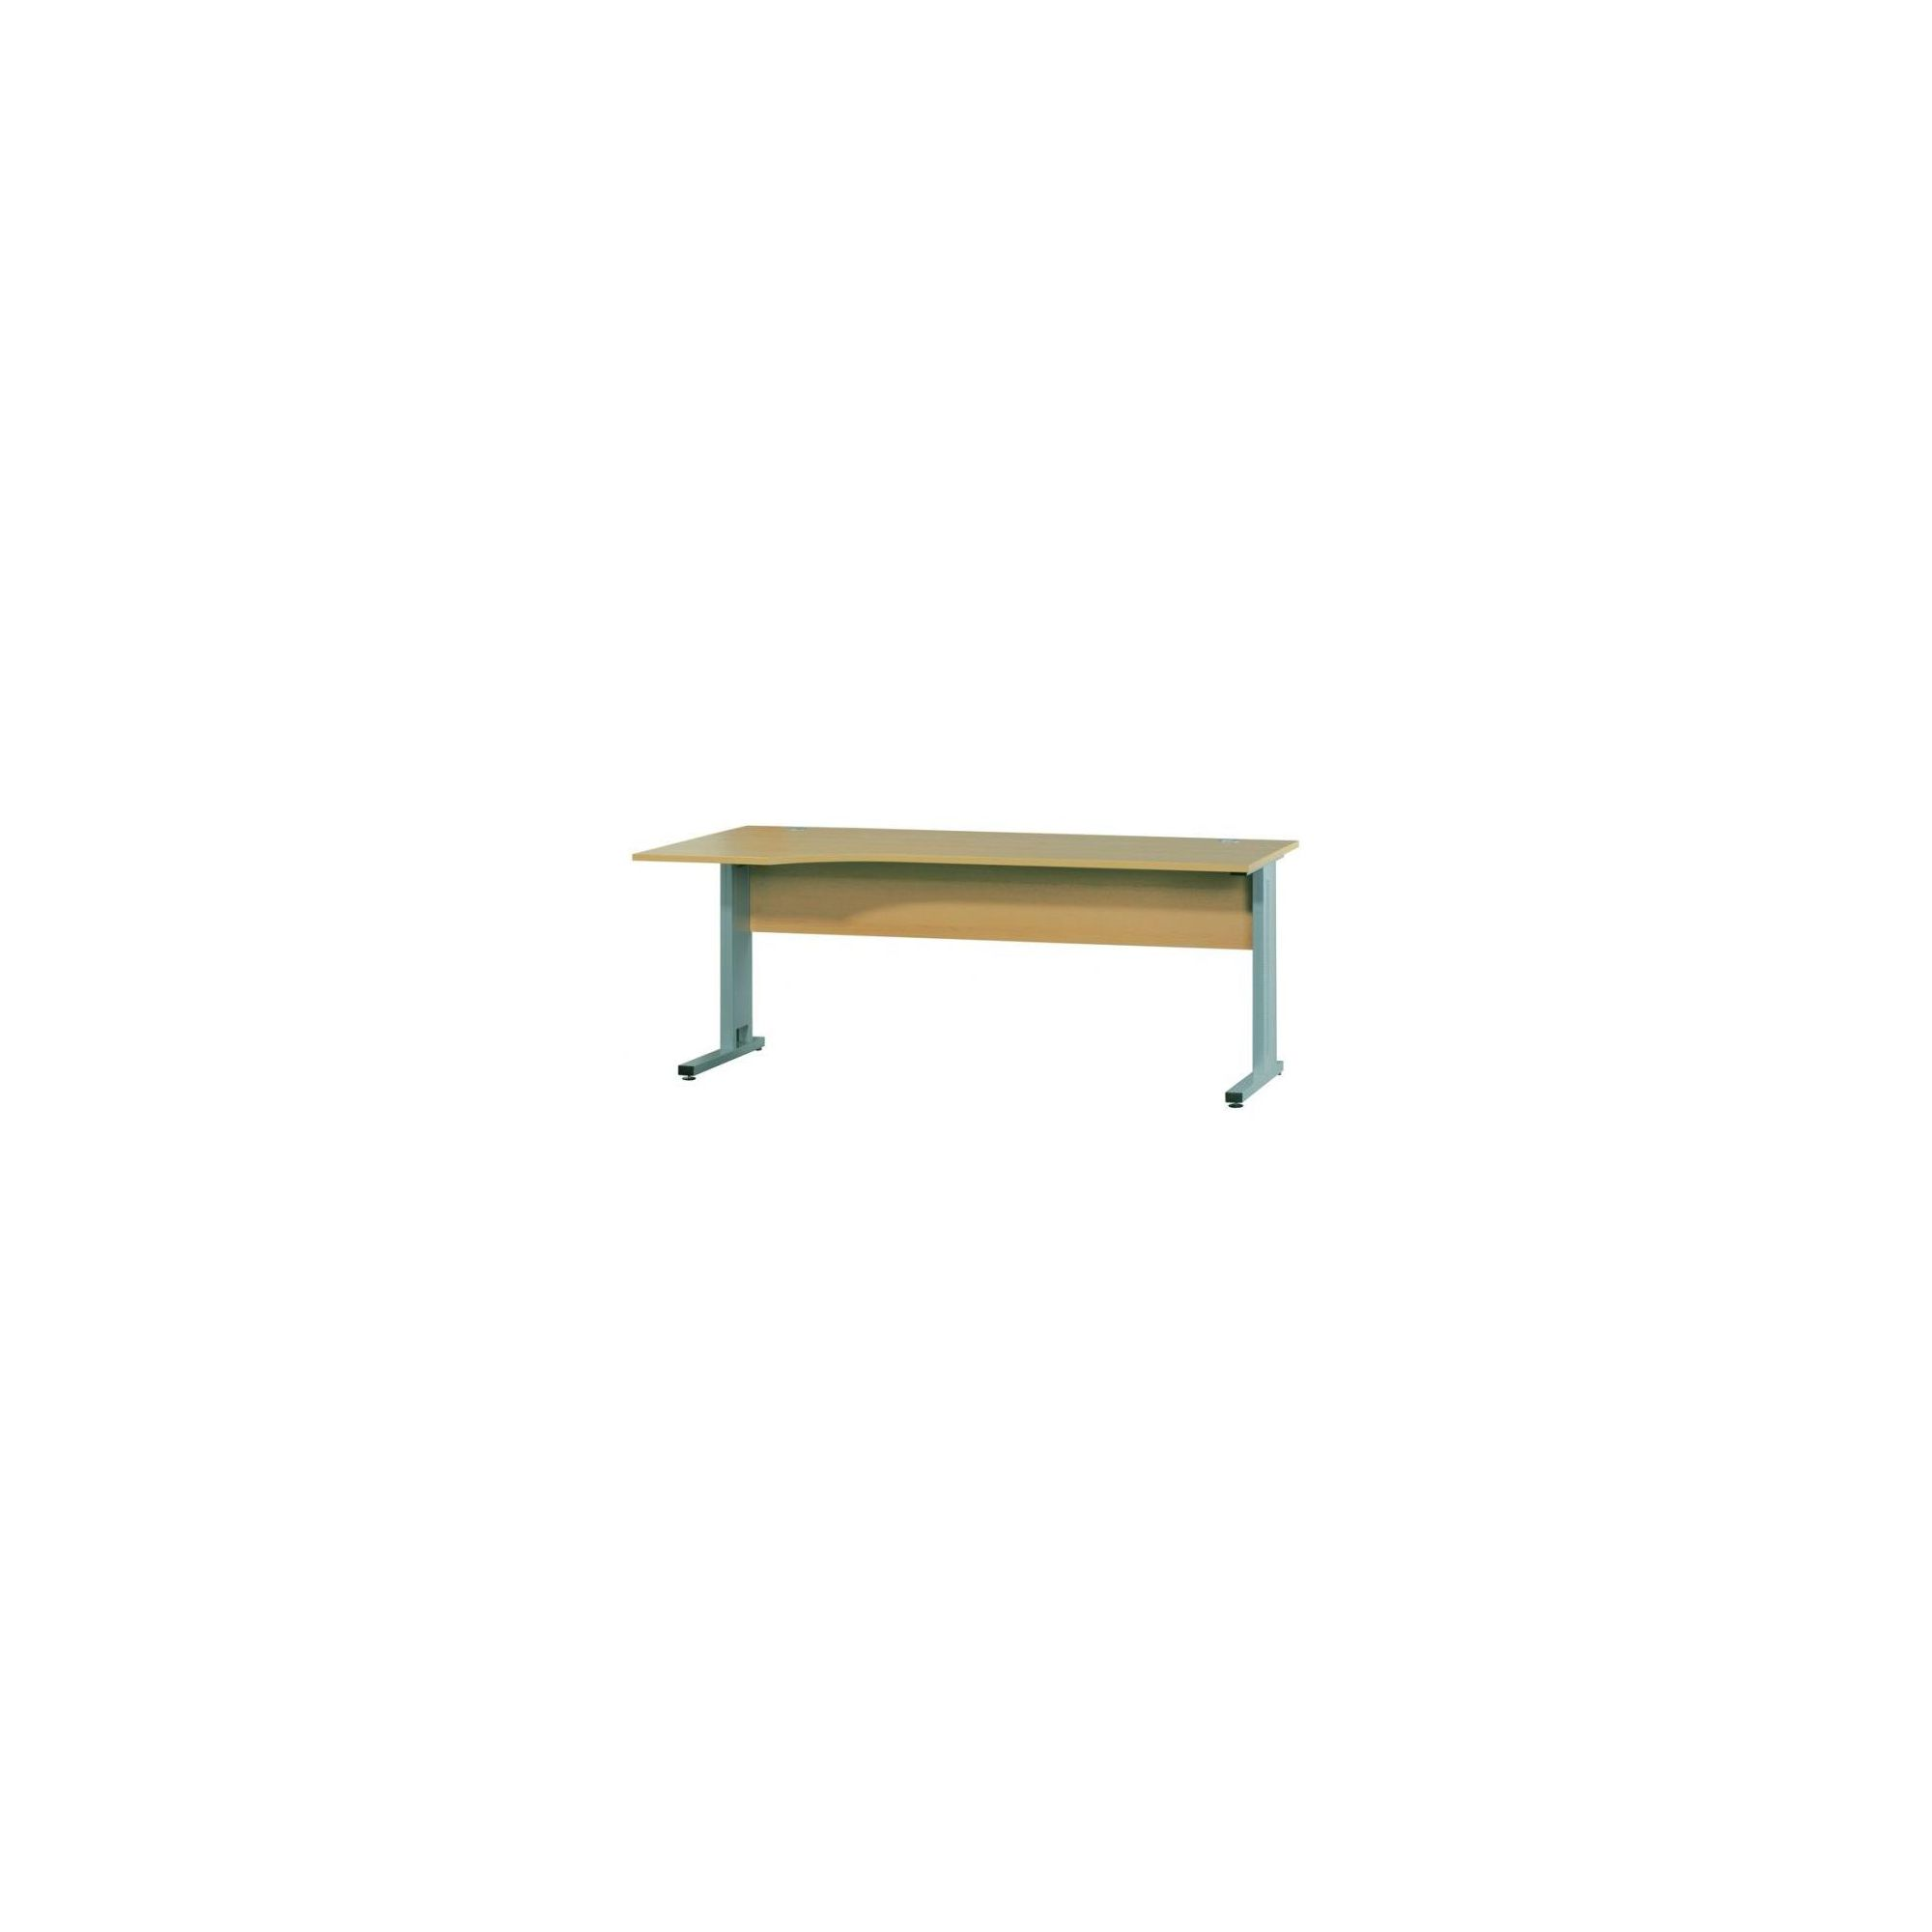 Bush Techno Speed L/H 1800mm Cantilever Framed Techno Speed Ergonomic Desk in Maple at Tesco Direct